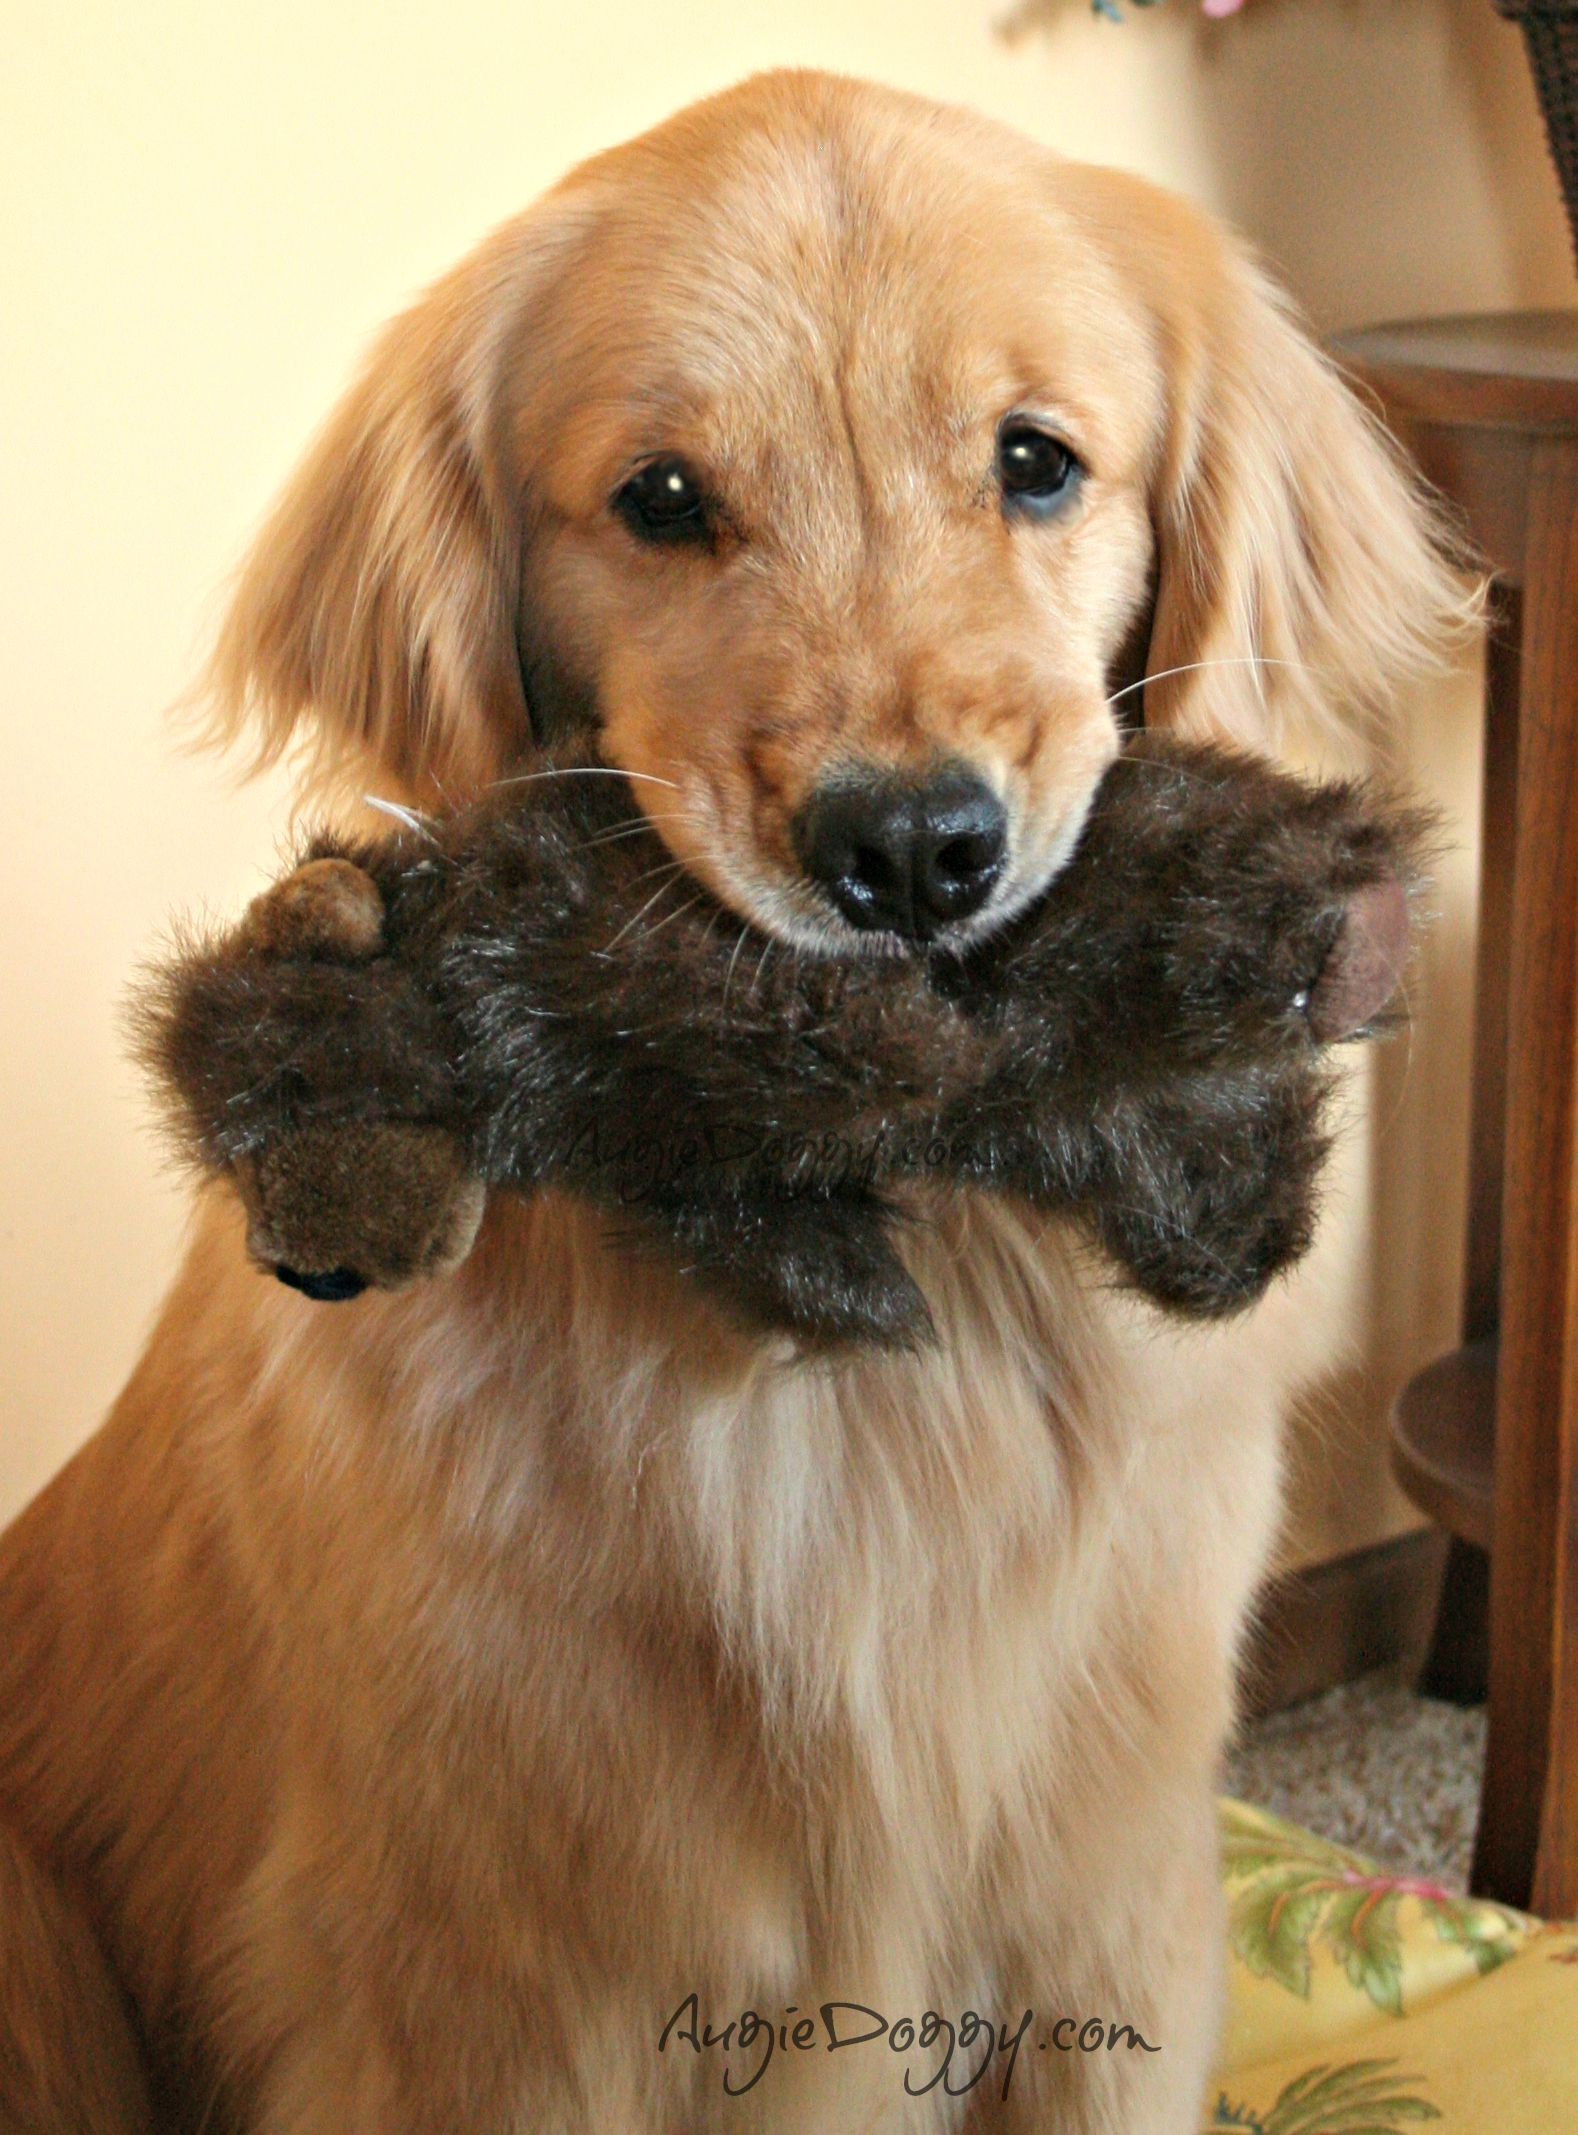 I brought you a toy! Want to play? :)